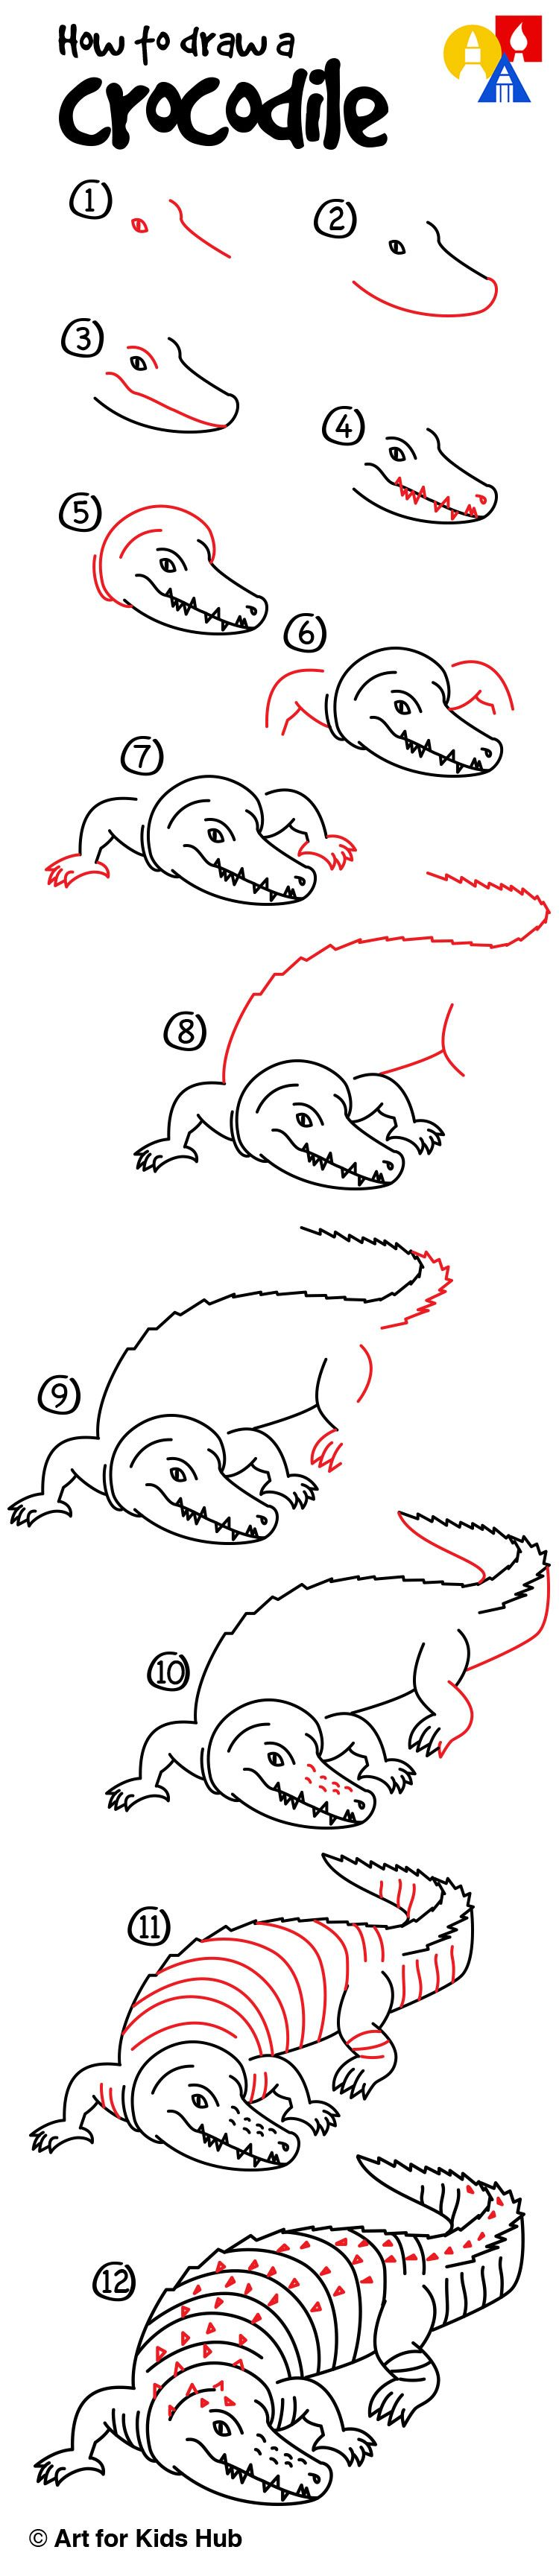 How to draw a realistic crocodile art for kids hub for Easy to draw crocodile